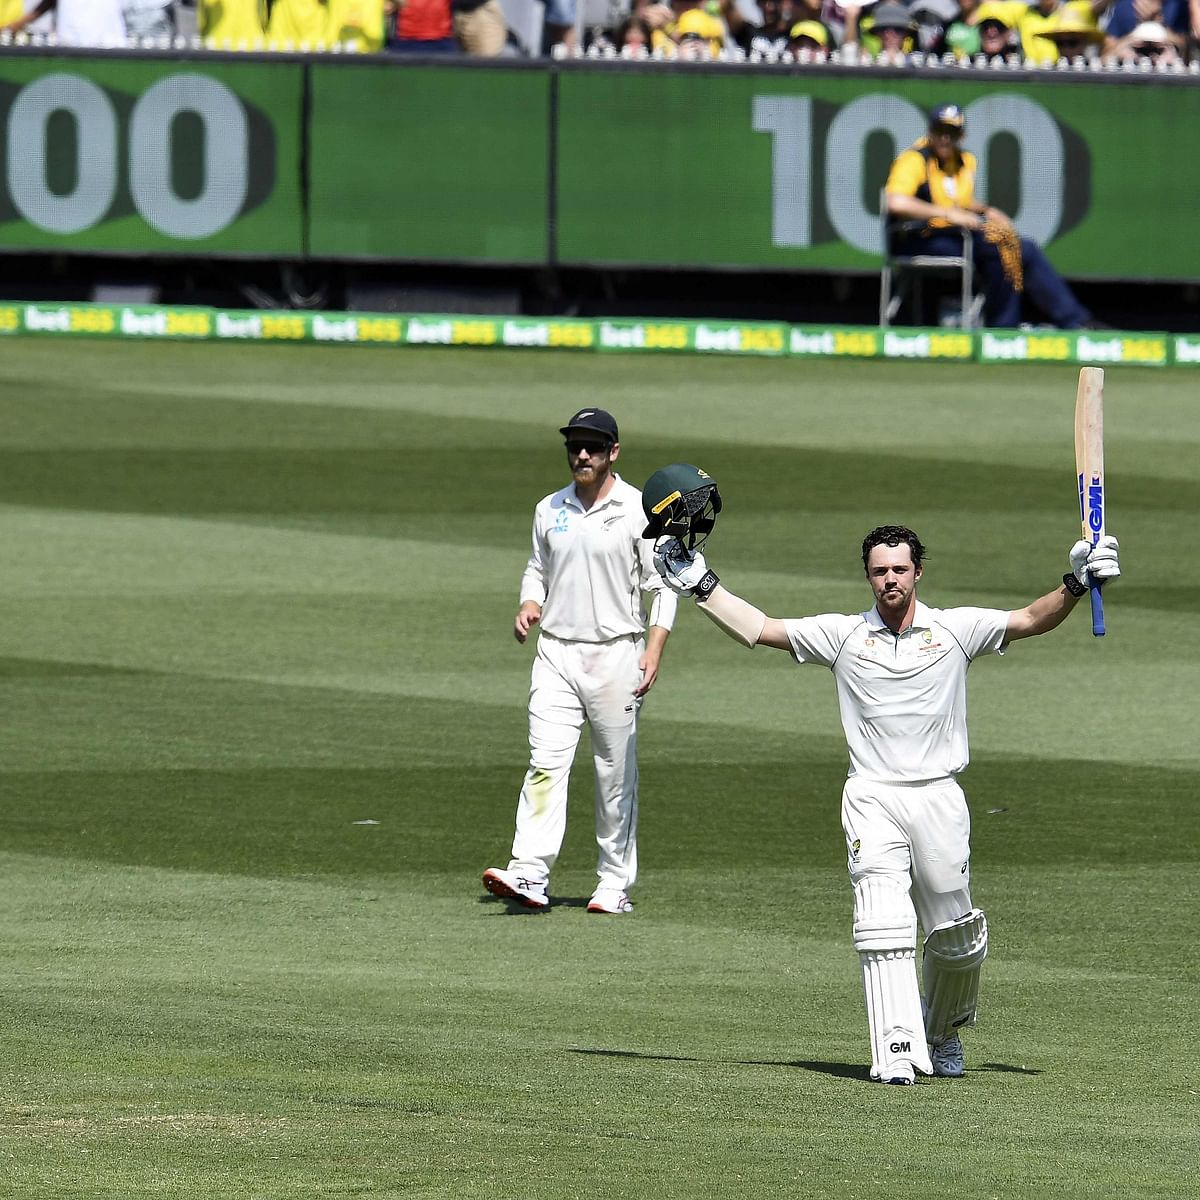 Australia vs New Zealand: Match Heads in Oz direction